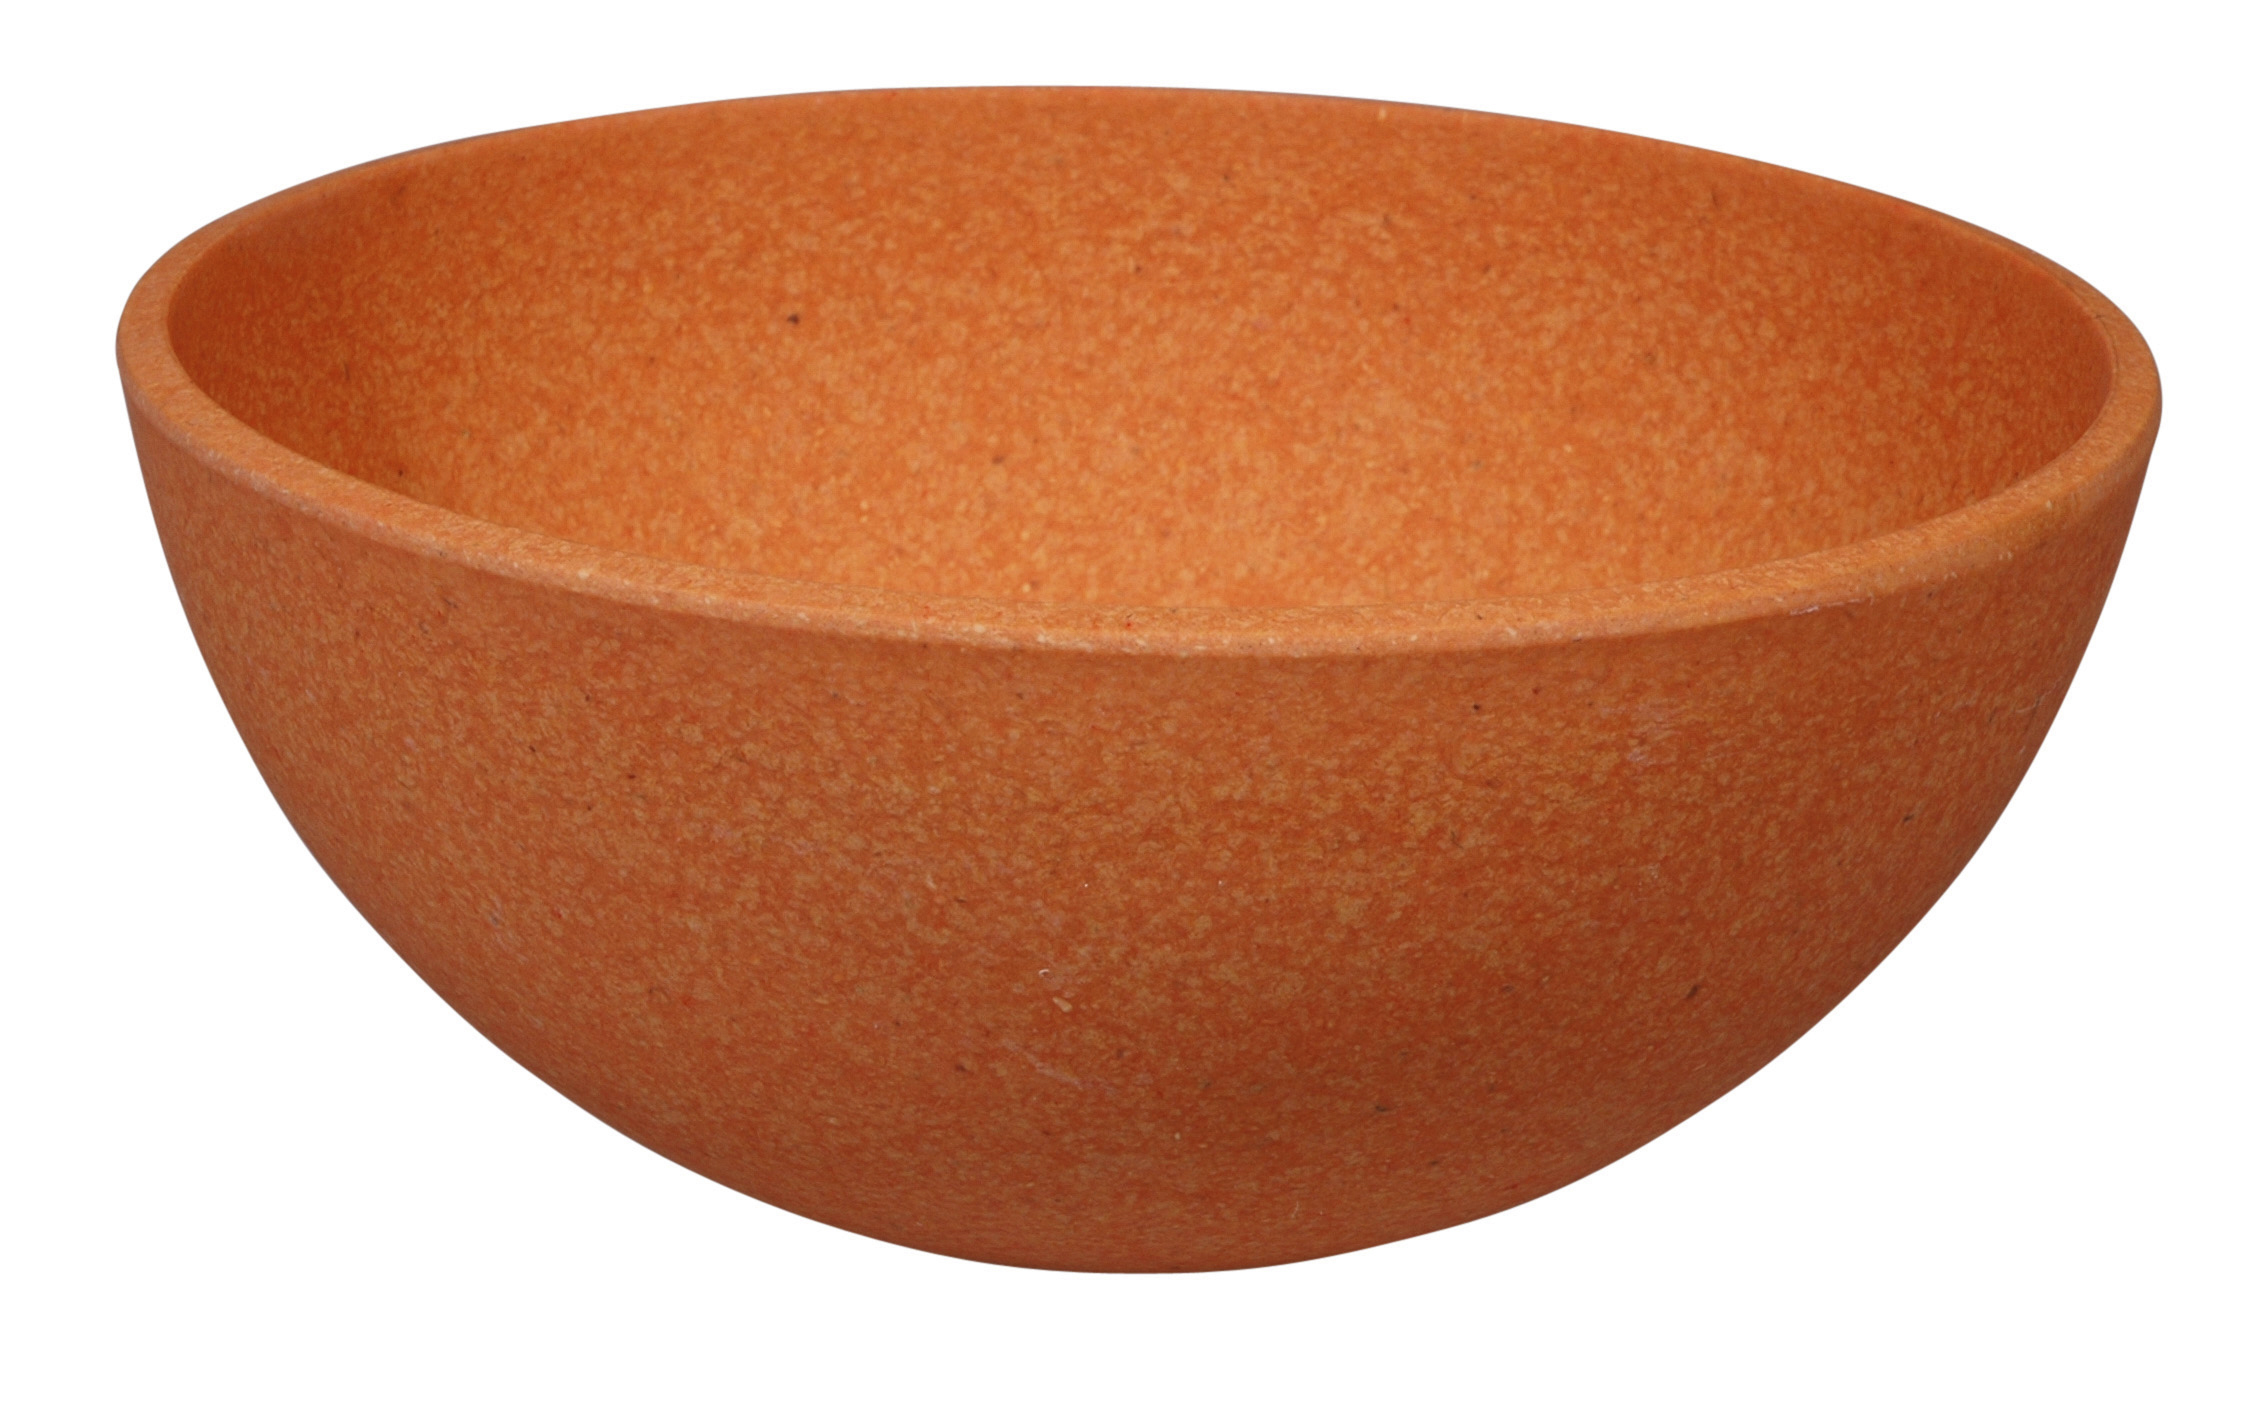 BIG BOWL Pumpkin orange